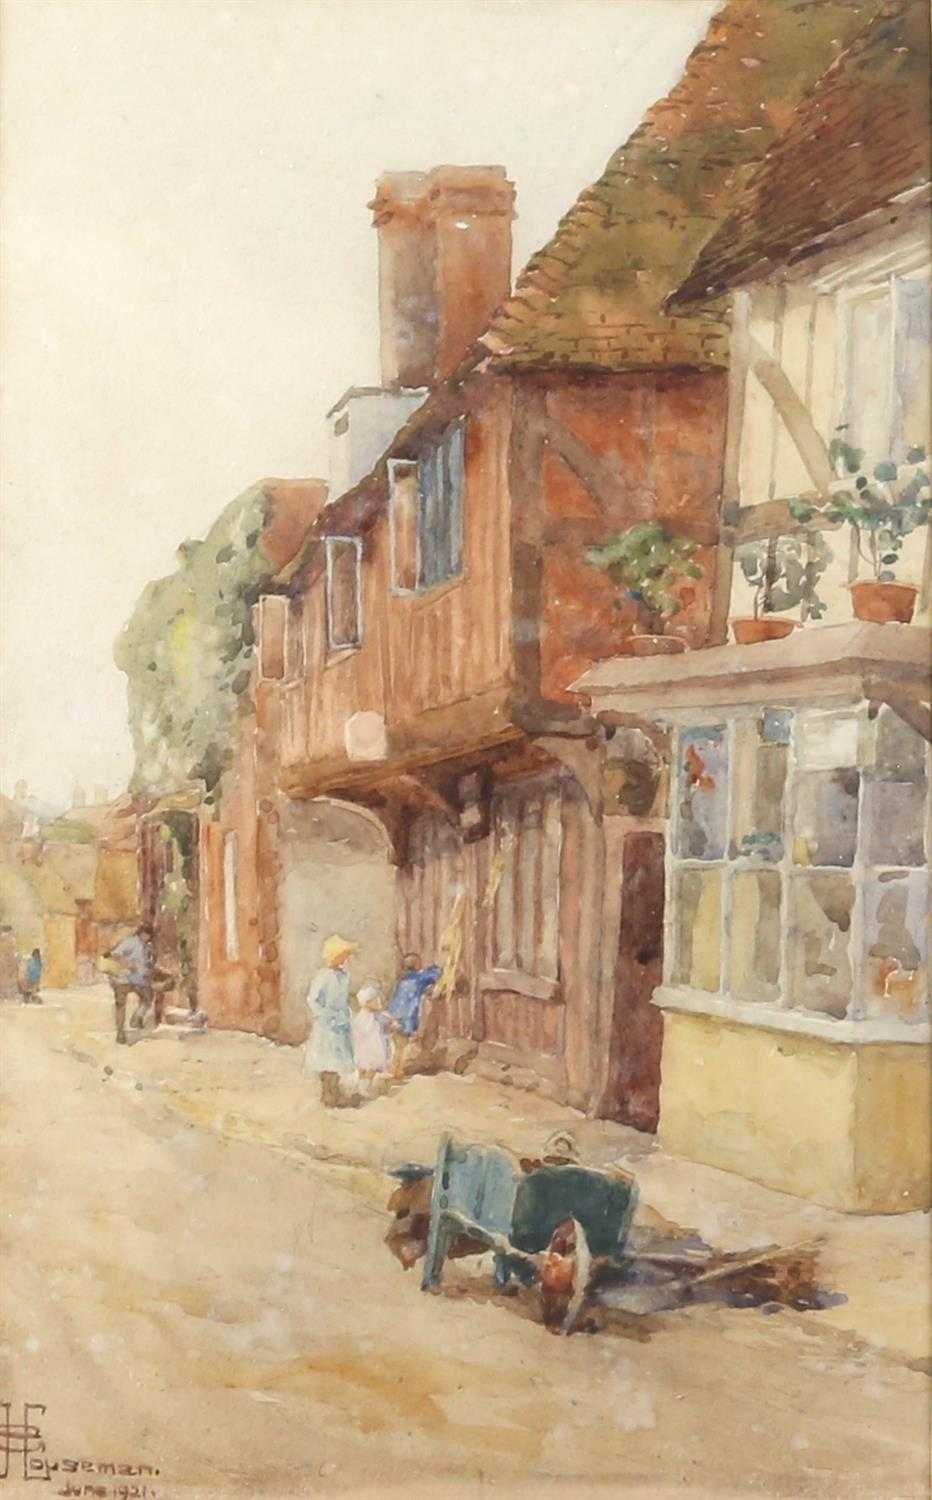 G. Houseman, 20th century, street scene with figures and barrow, signed and dated June 1921,